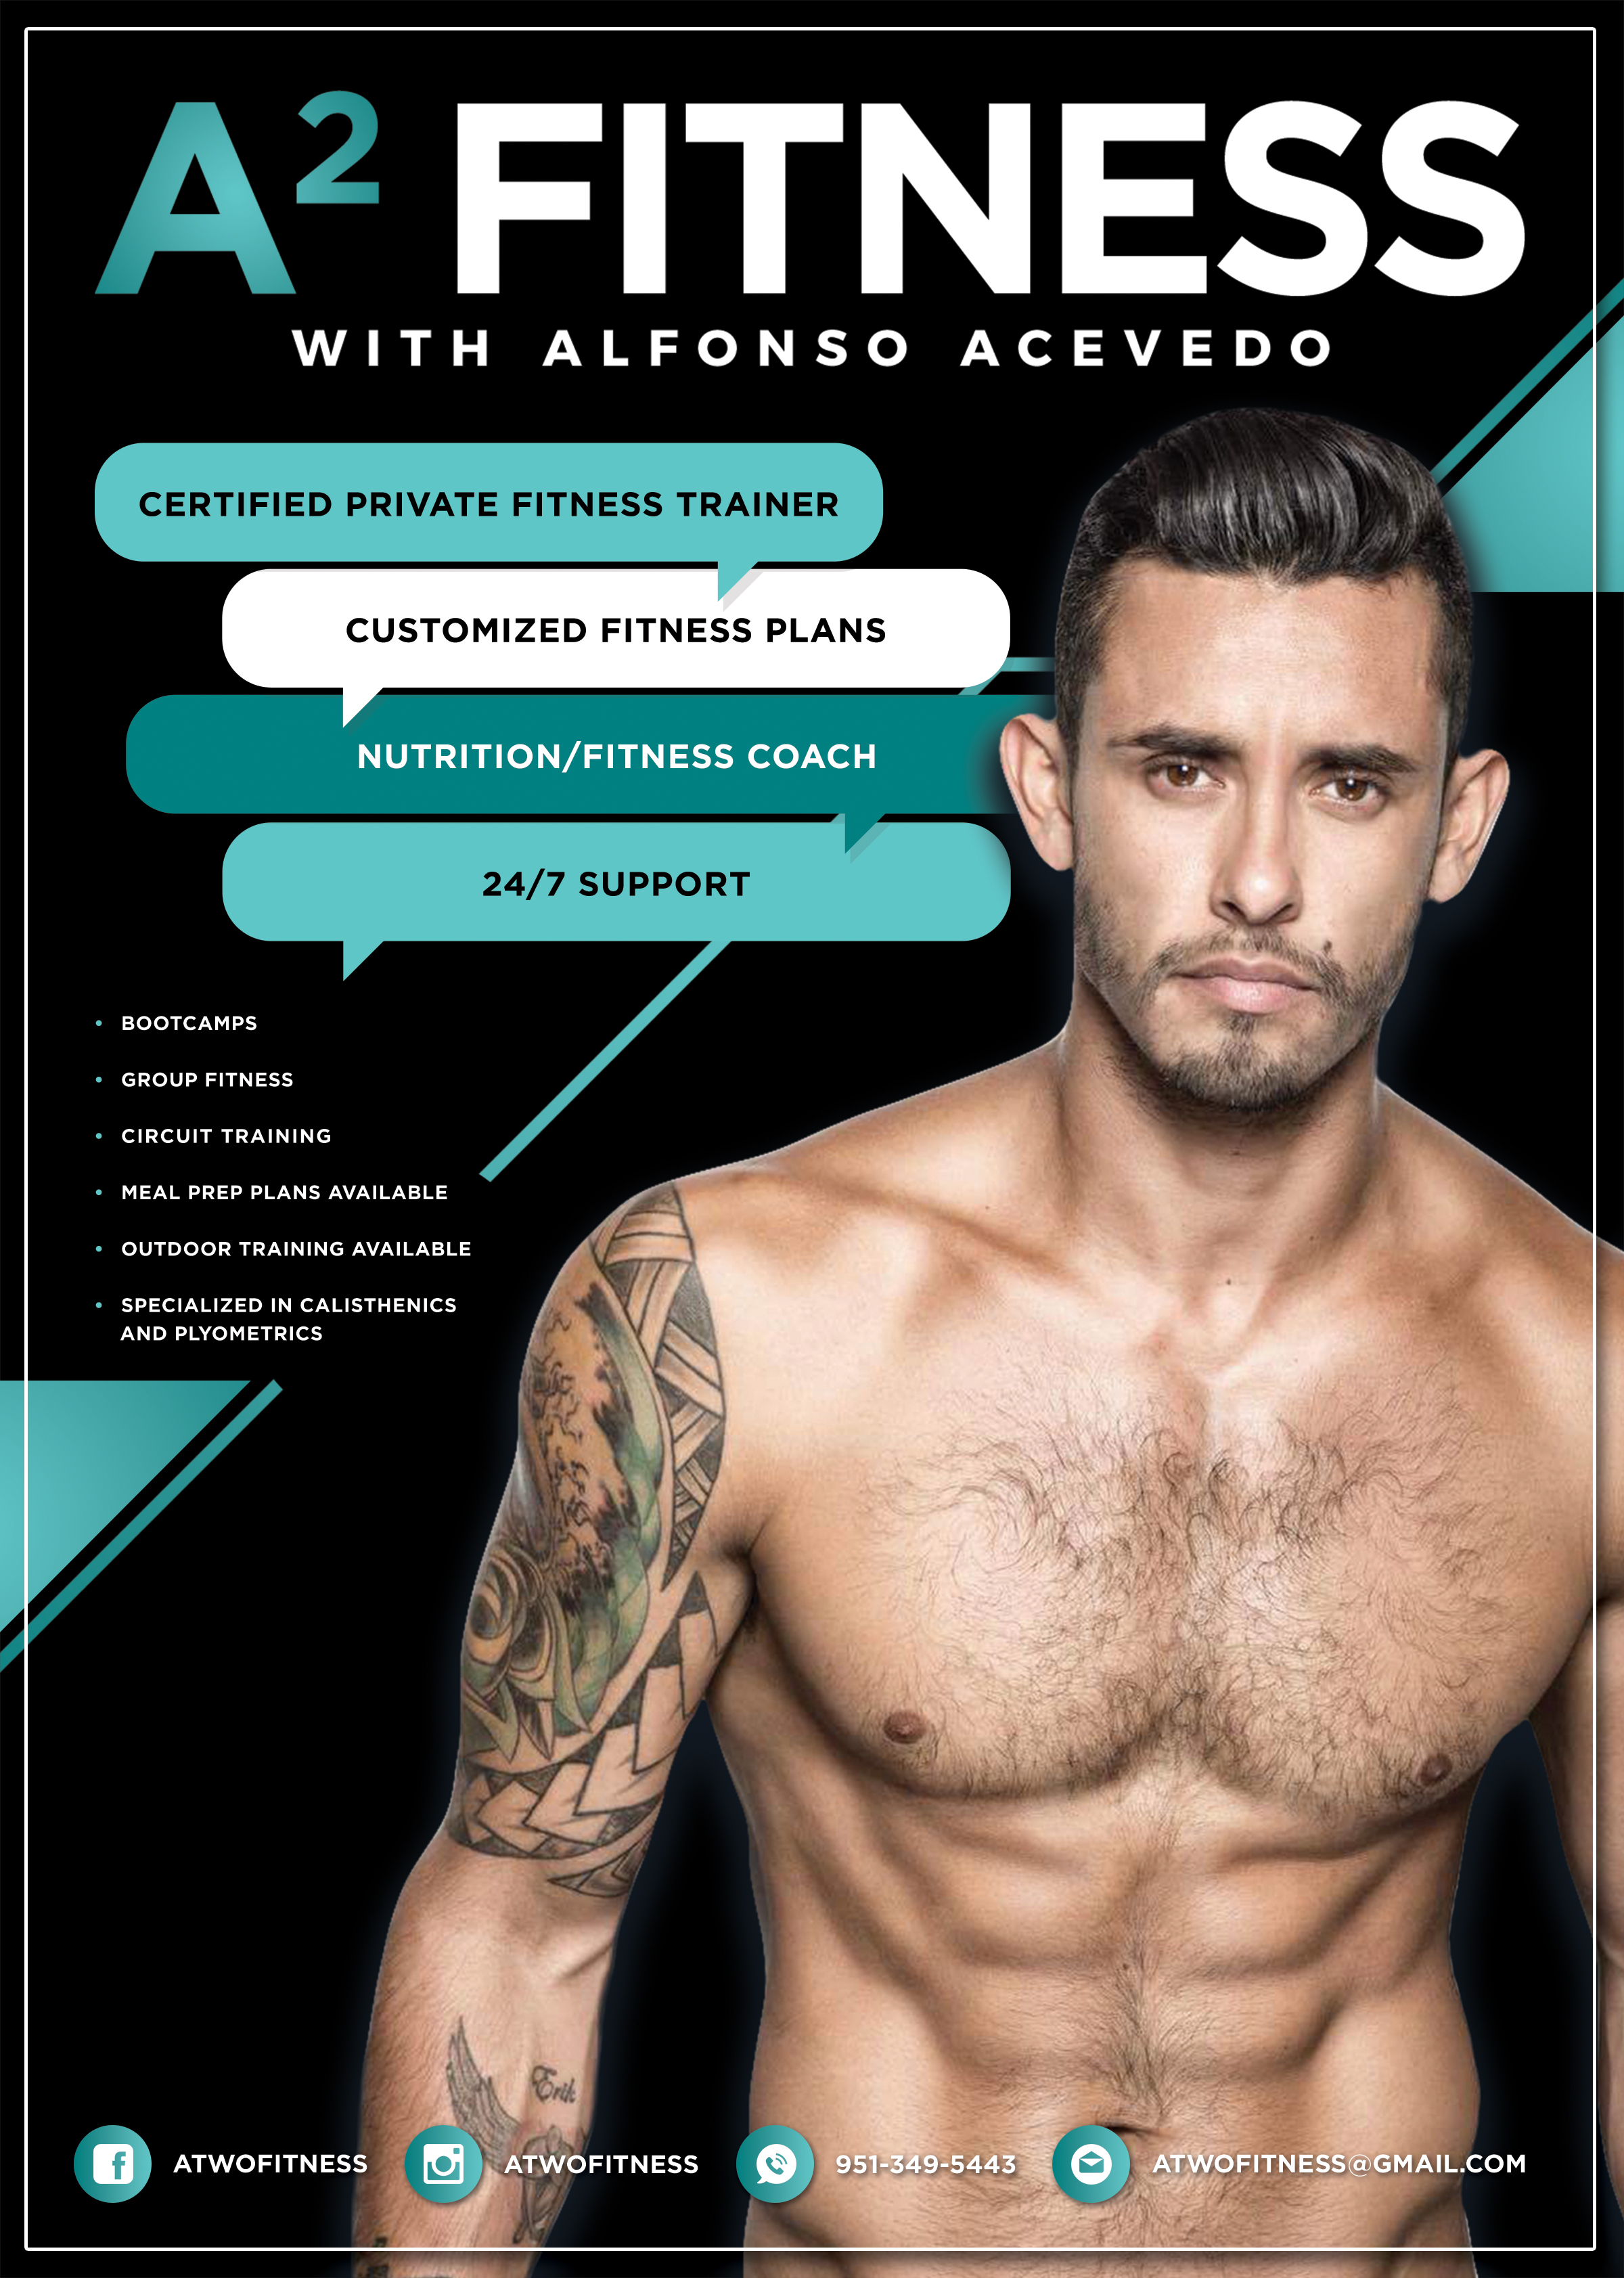 Design for my good friend Alfonso, who's launching his fitness training empire. Check him out: @atwofitness